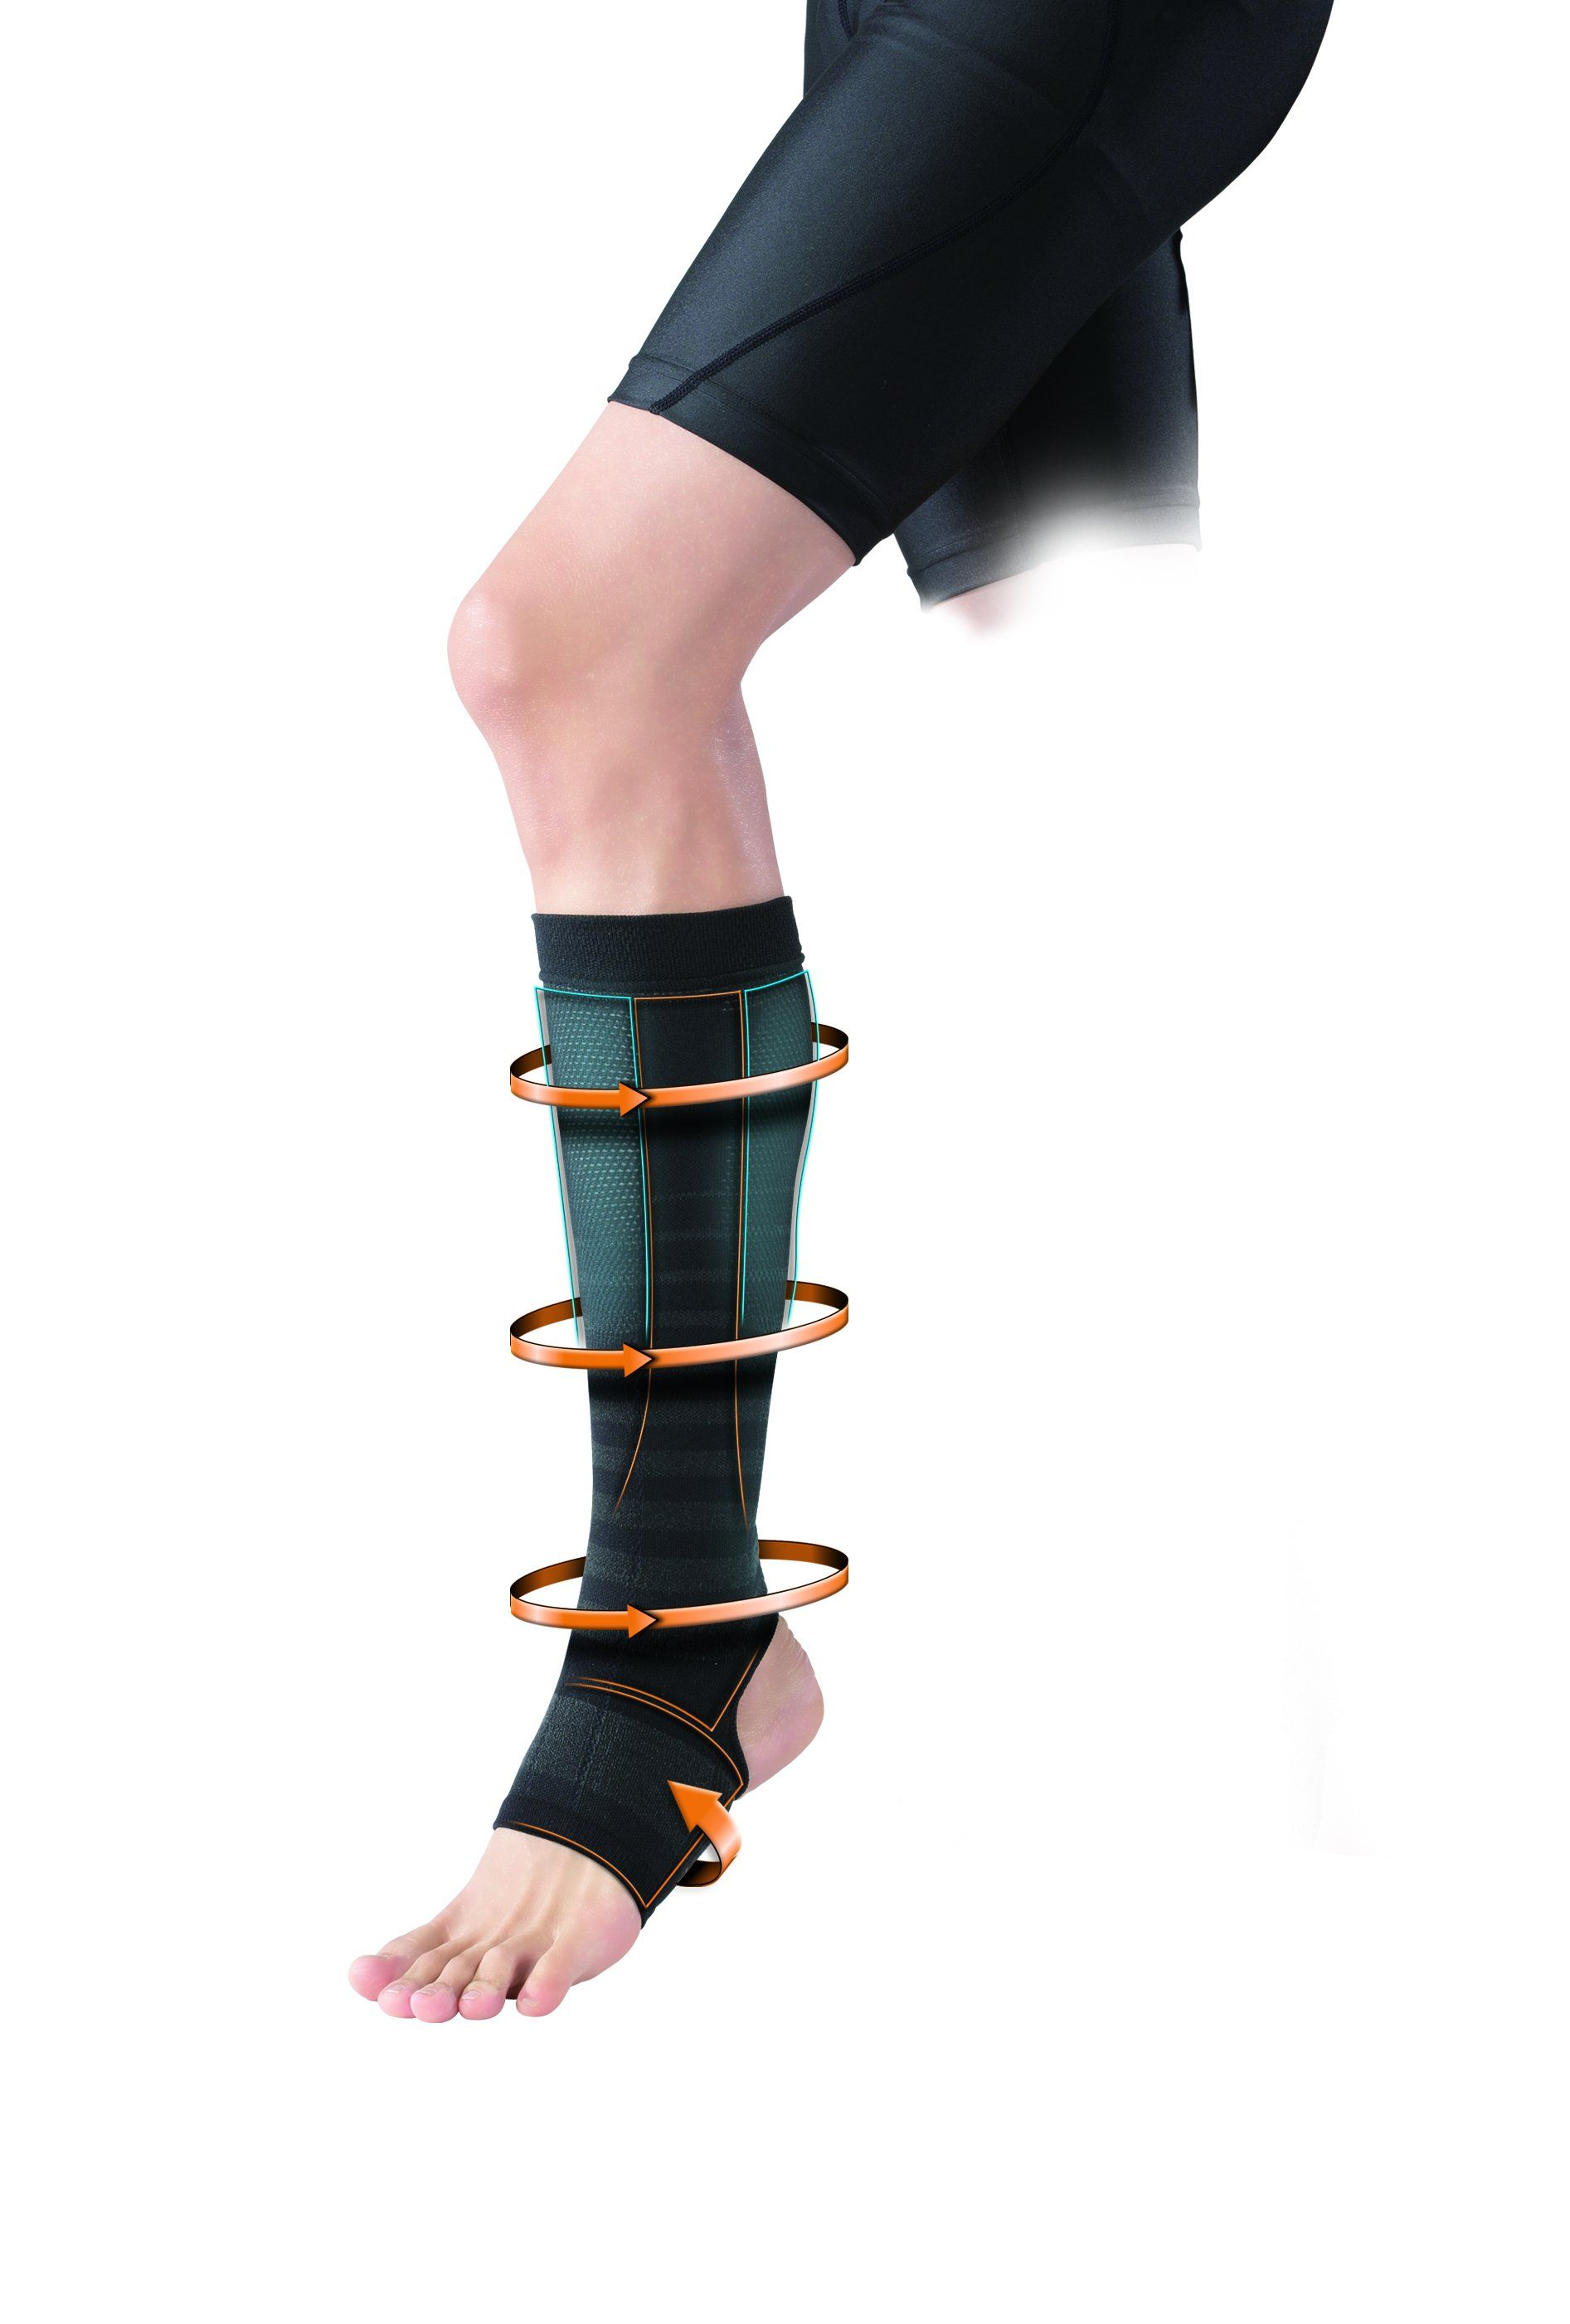 Calf Sleeve After, permeated with Phiten unique Aqua Titanium Technology to relieve aches and pain and regulates blood circulation for recovery.